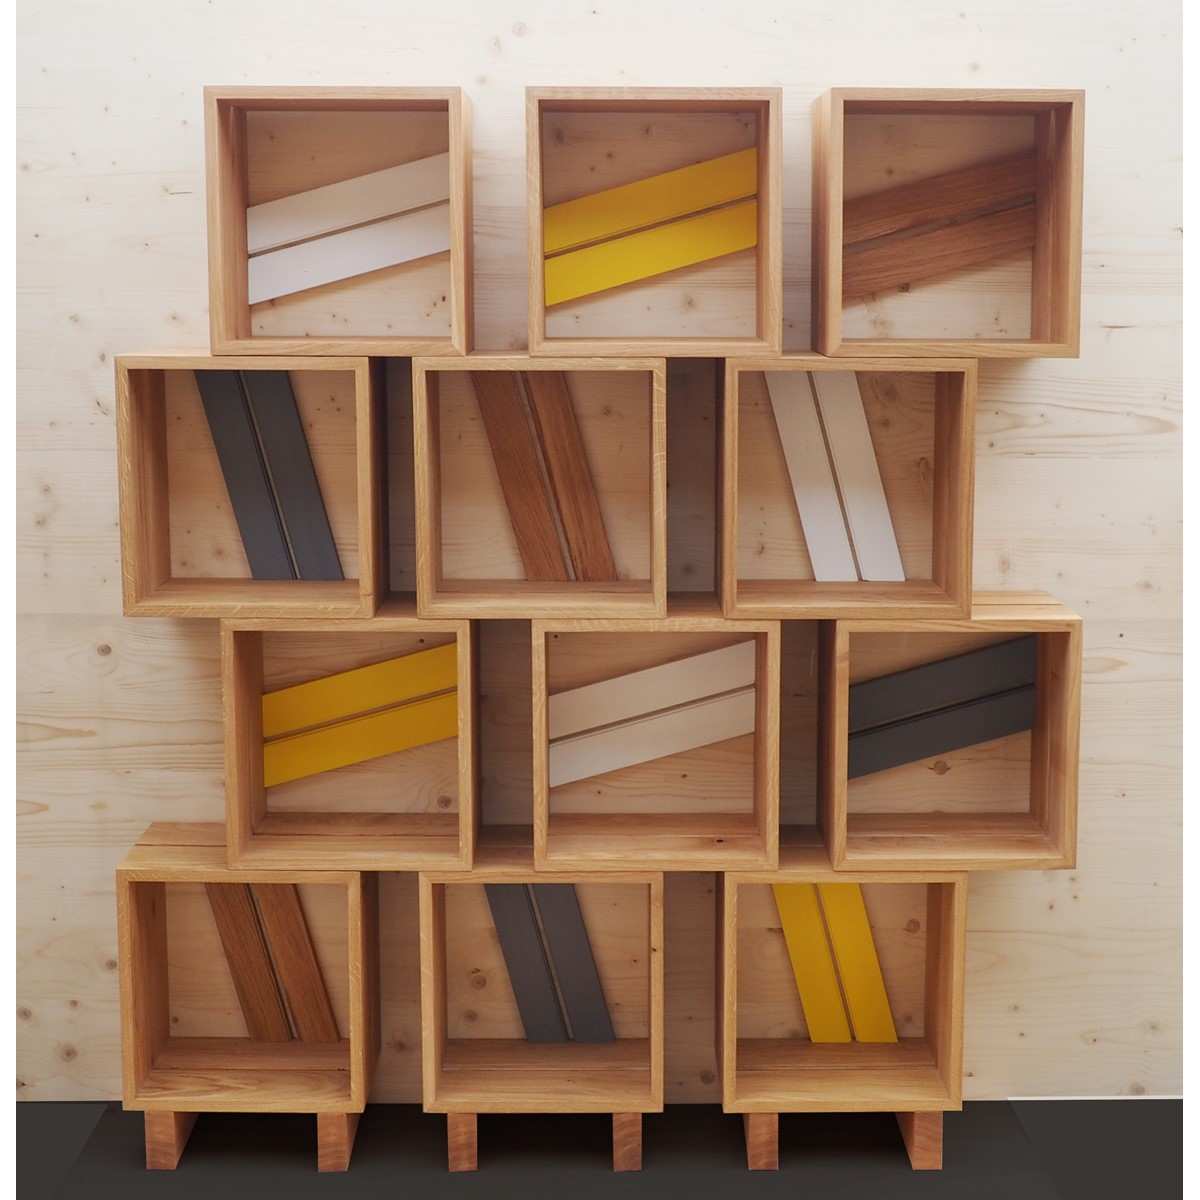 fabriquer bibliotheque bois maison design. Black Bedroom Furniture Sets. Home Design Ideas